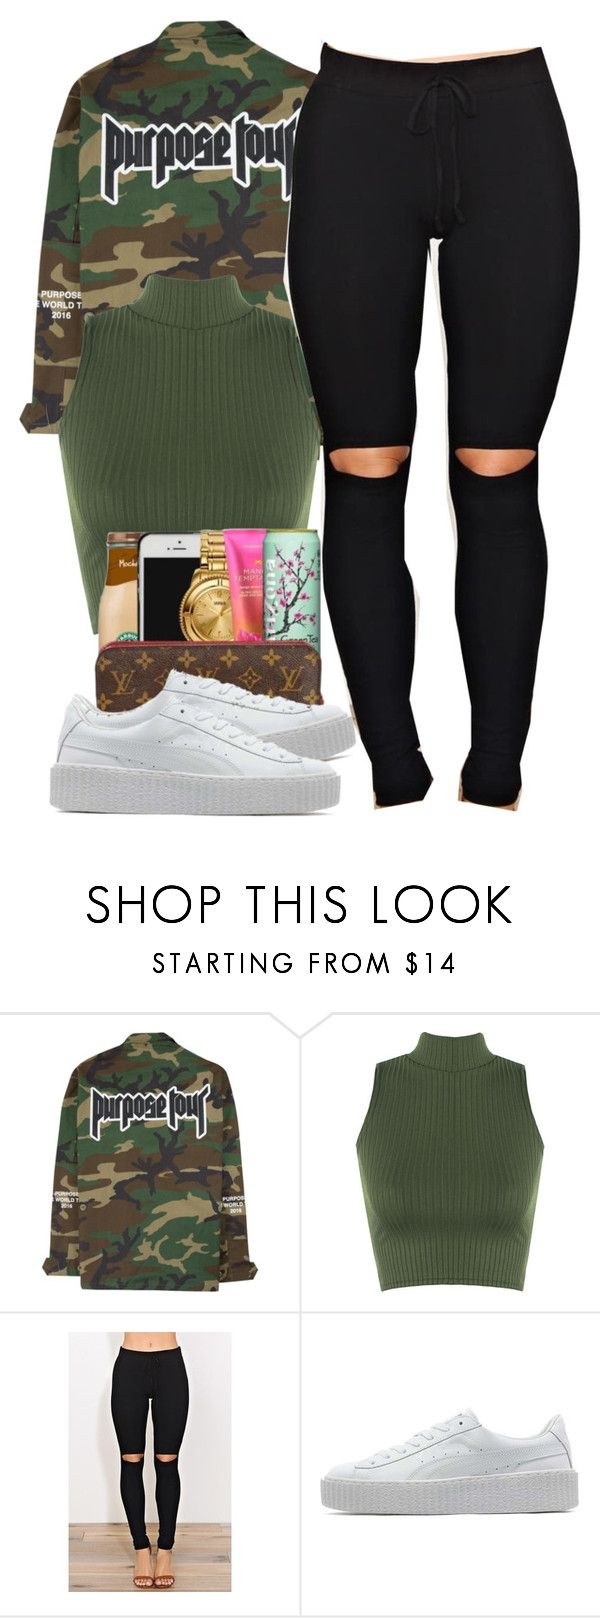 """Purpose"" by alexanderbianca ❤ liked on Polyvore featuring WearAll and Puma"